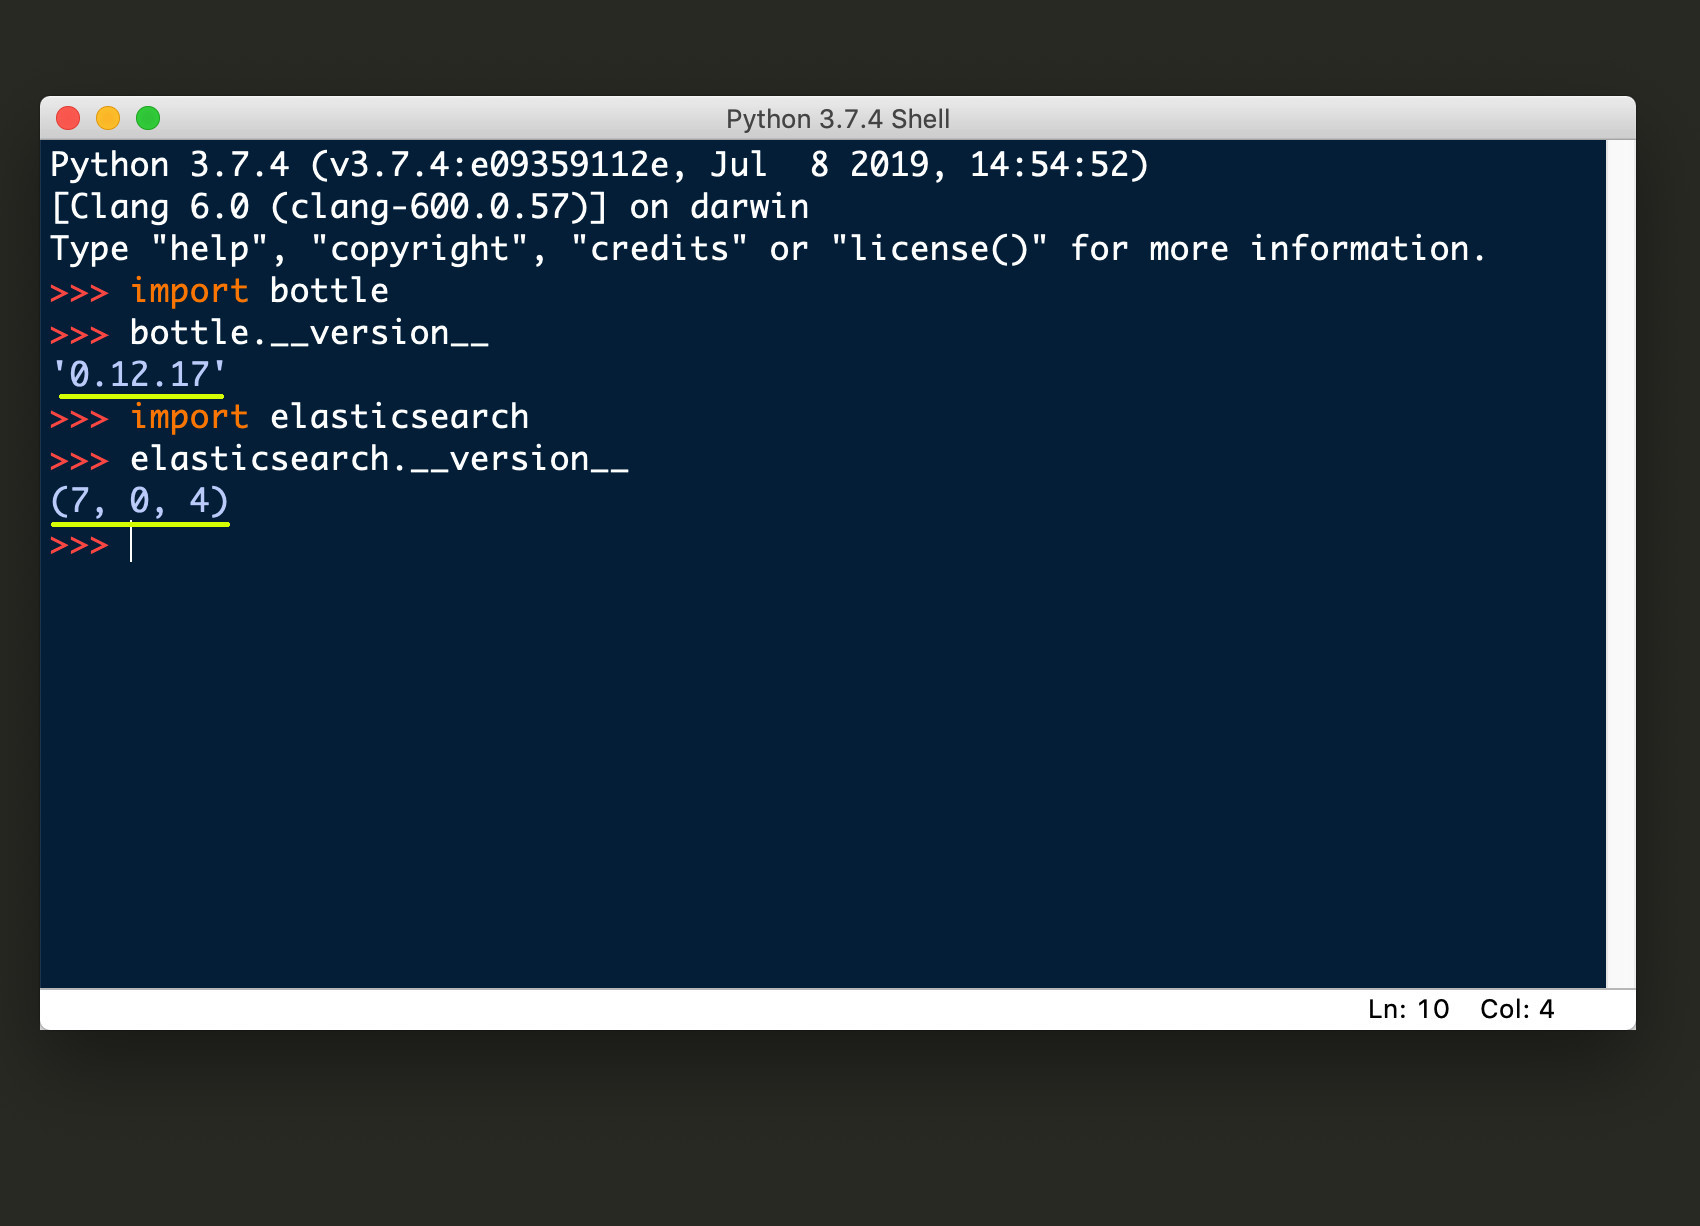 Screenshot of Python 3.7 IDLE returning the version numbers for Bottle and Elasticsearch